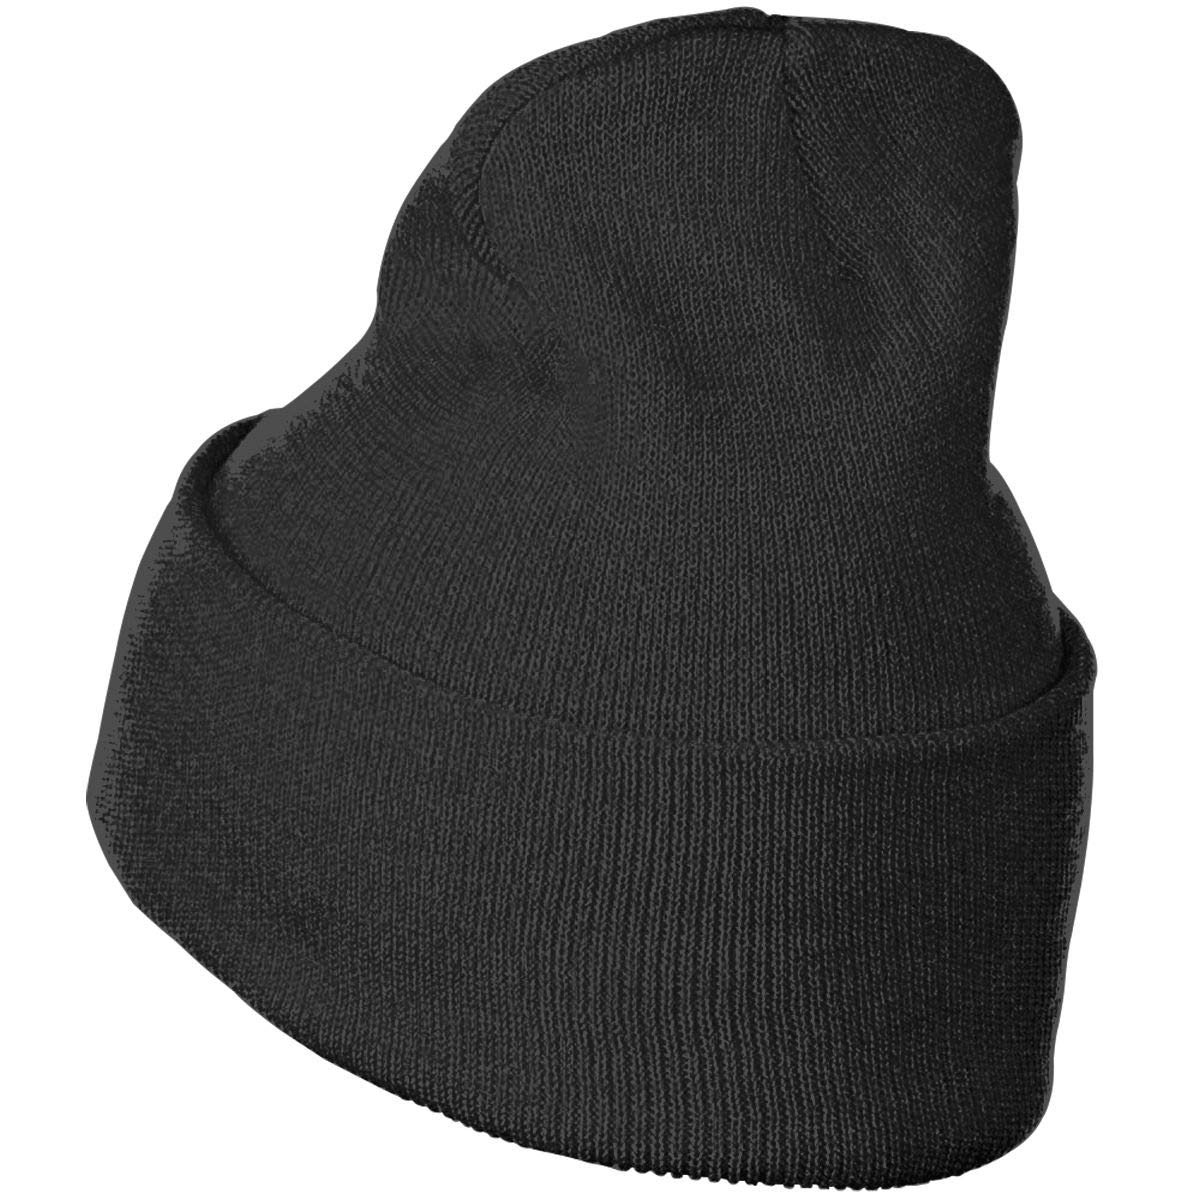 Horizon-t Skull Unisex 100/% Acrylic Knitting Hat Cap Fashion Beanie Hat